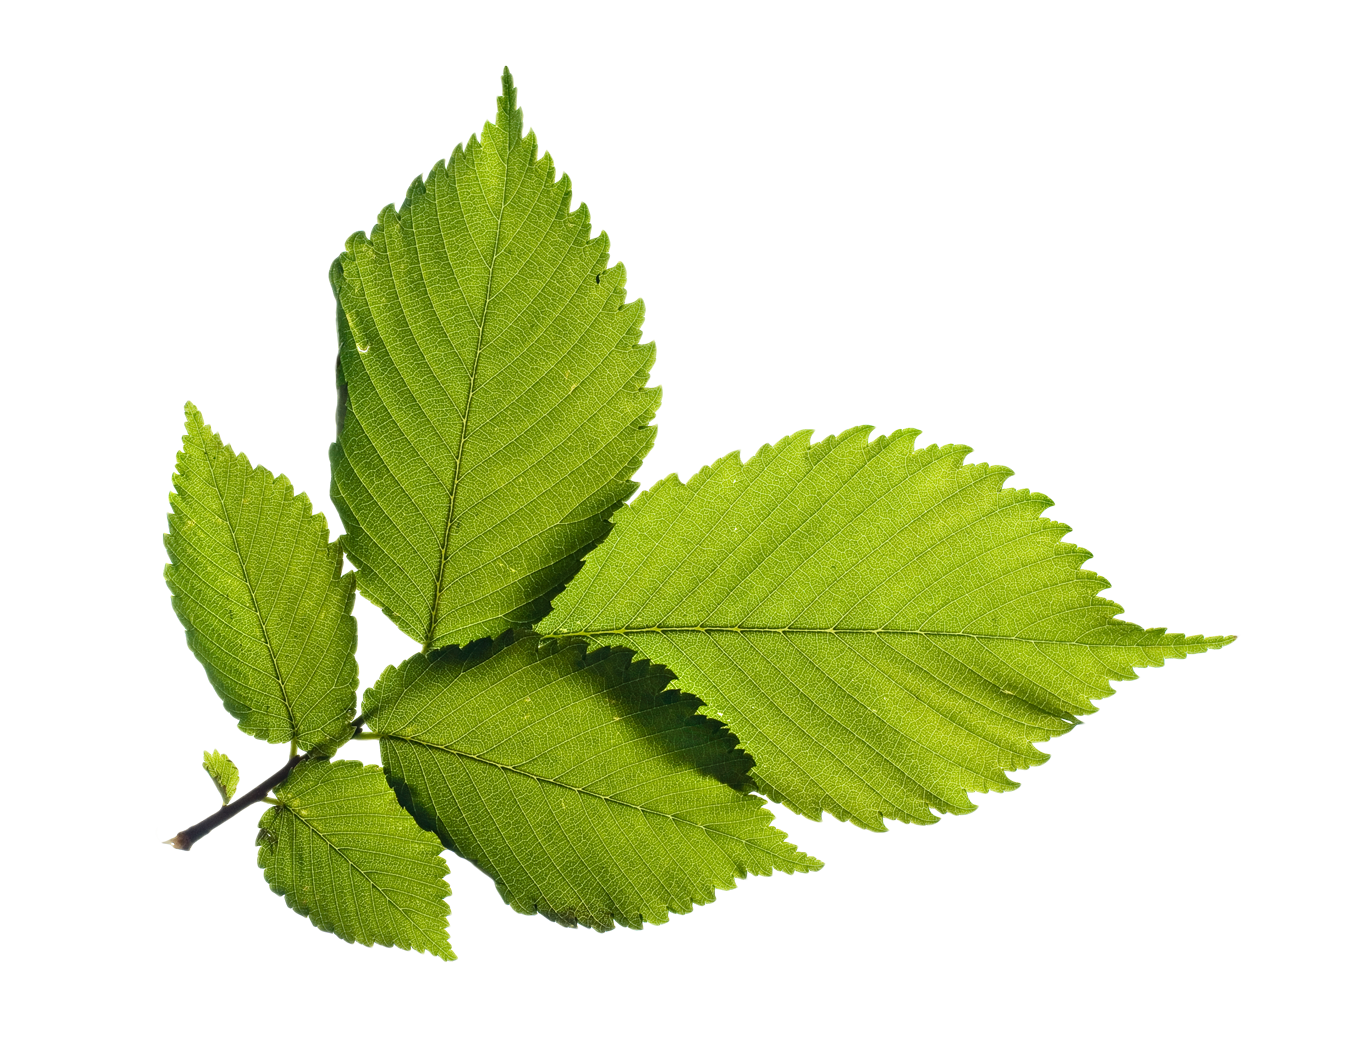 Green Leafs PNG Image